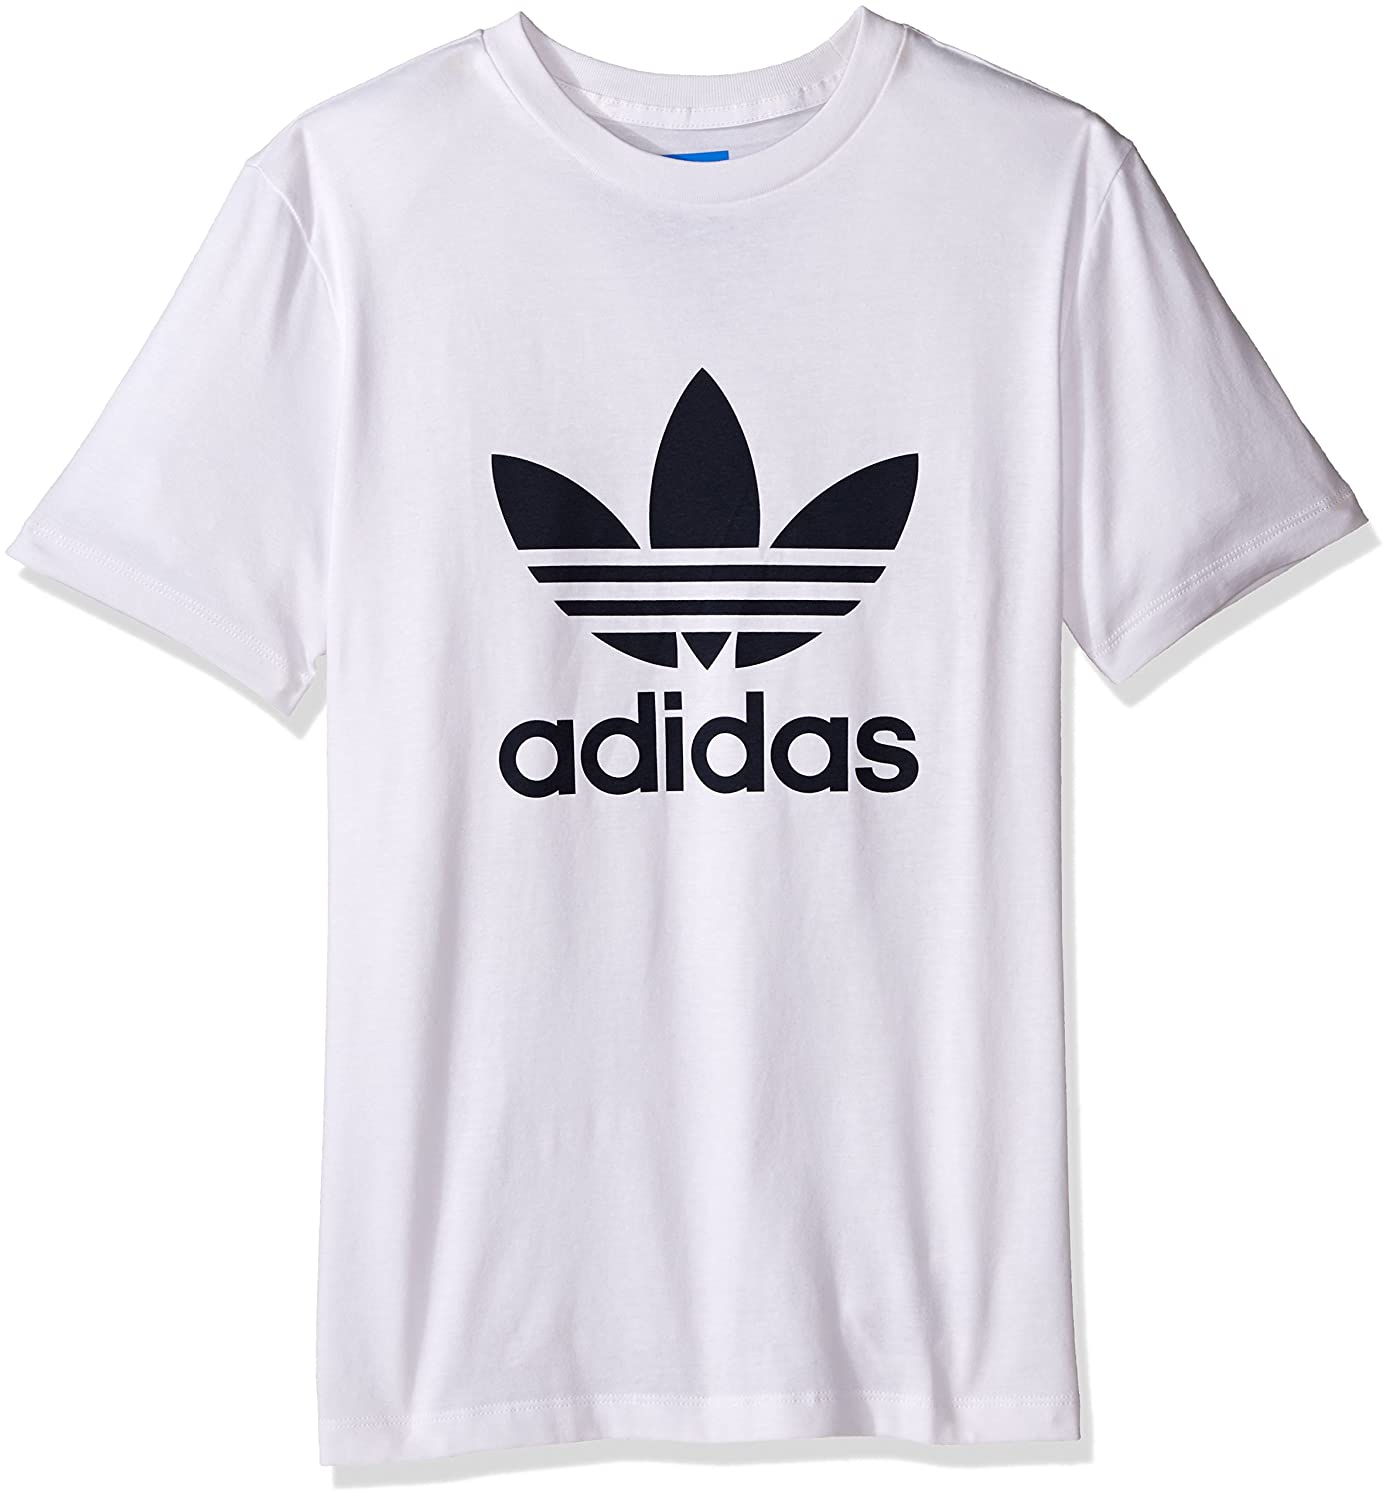 sports shoes ab278 05bae Amazon.com  adidas Originals Boys  Trefoil Tee  Clothing